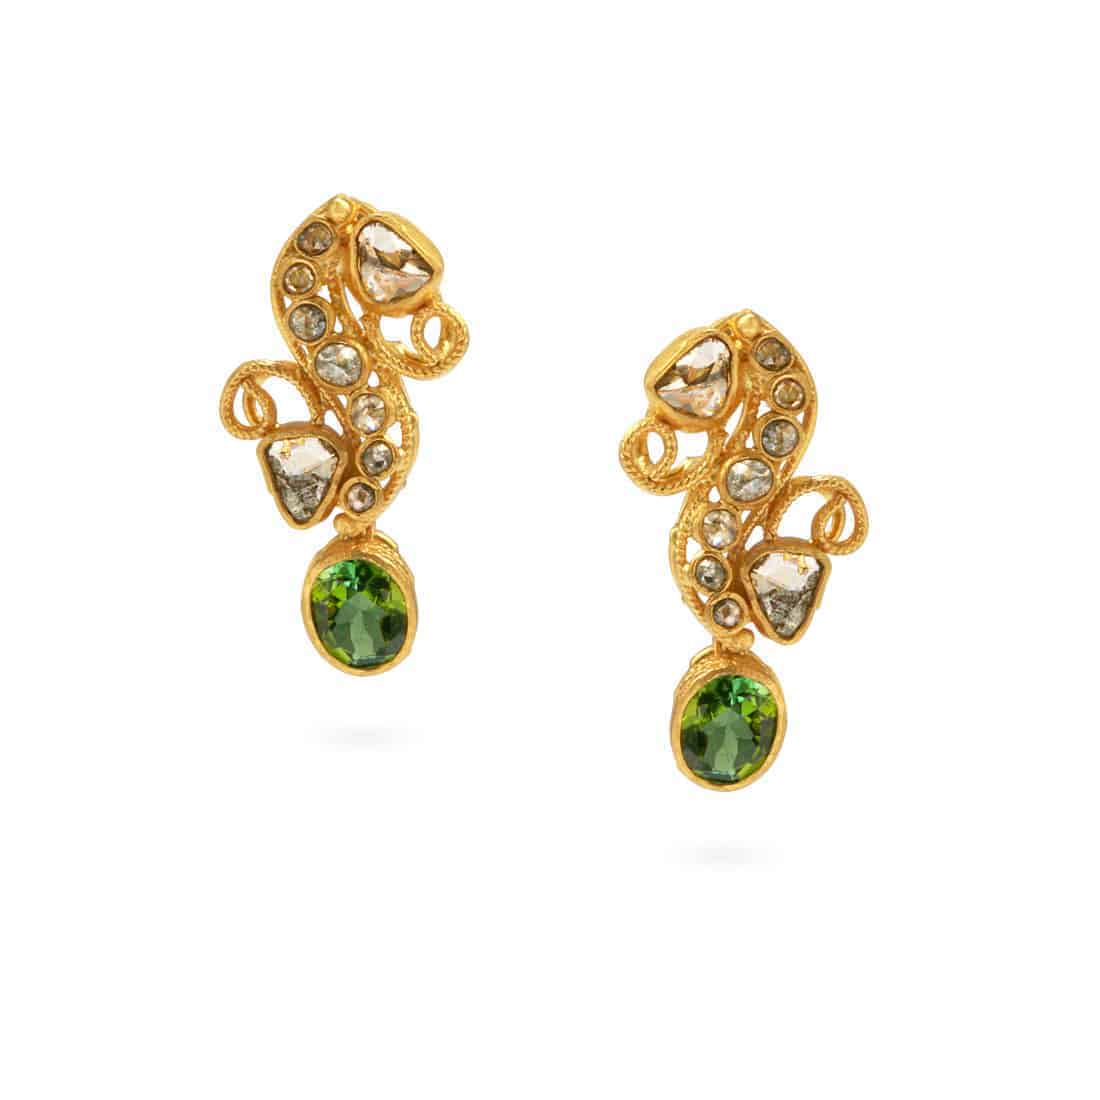 21512 - 22ct Gold Polki Diamond Earrings